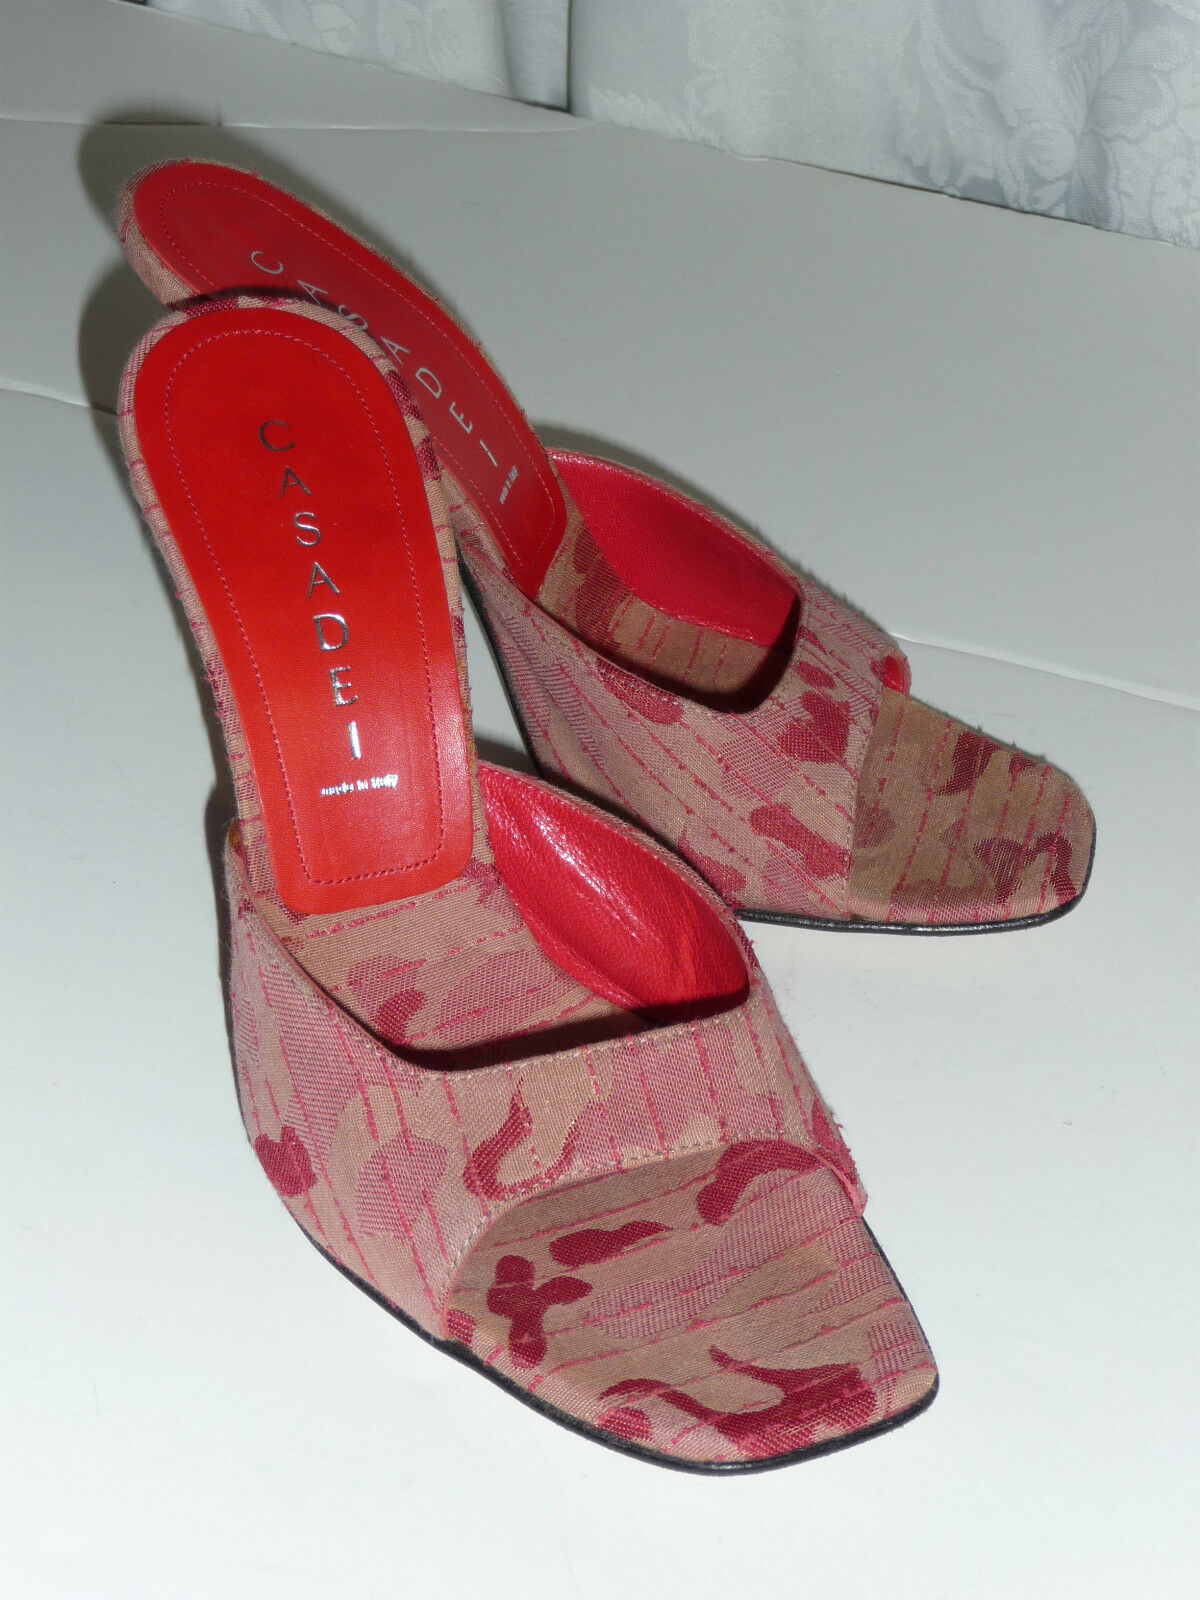 Casadei Made in  rouge High Fashion 4  Stiletto Heel Mule Sandal 6.5 VGUC